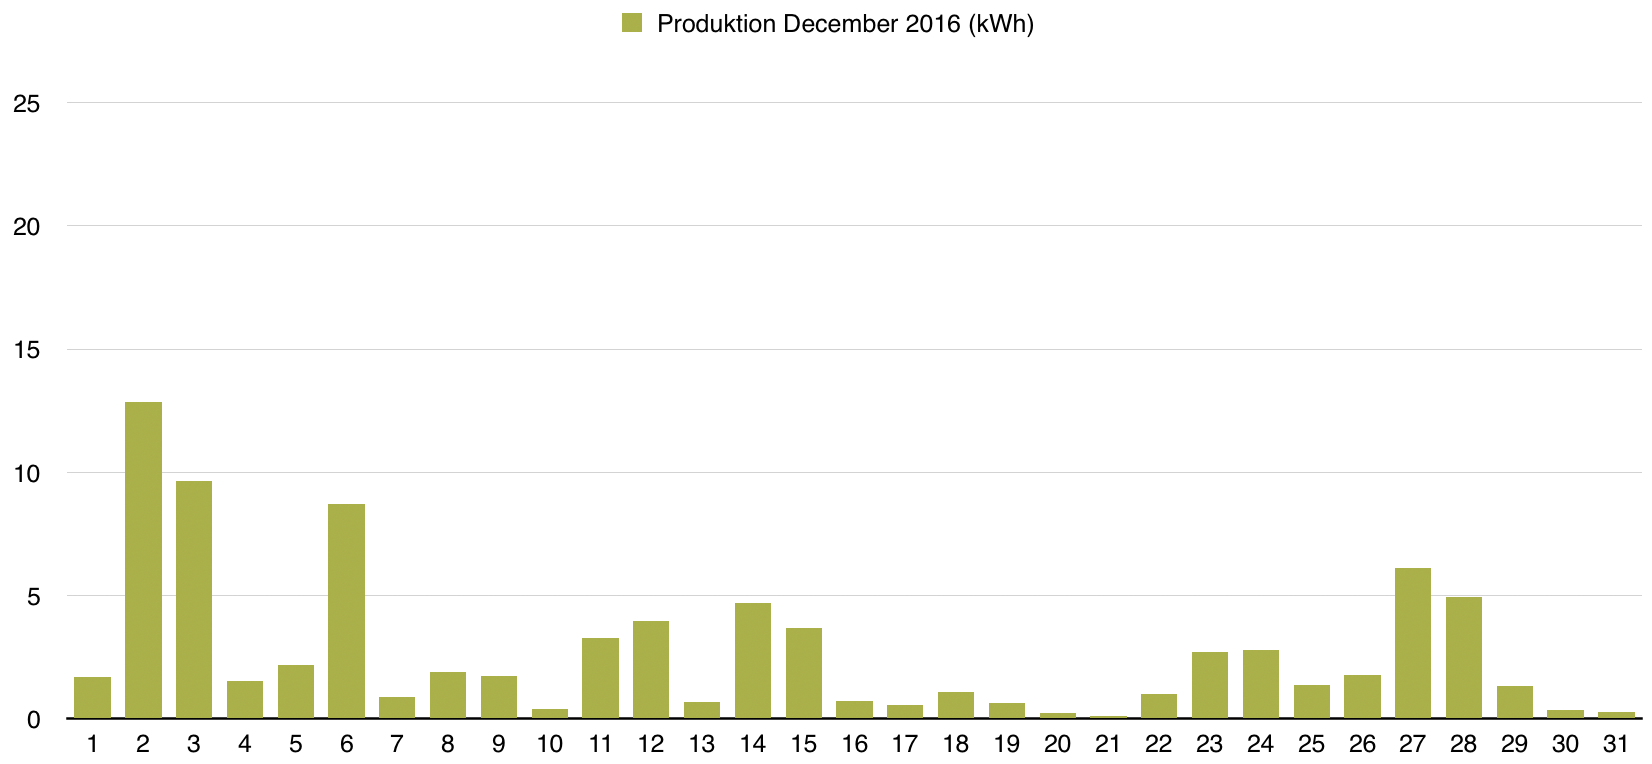 Solceller - Produktion december 2016